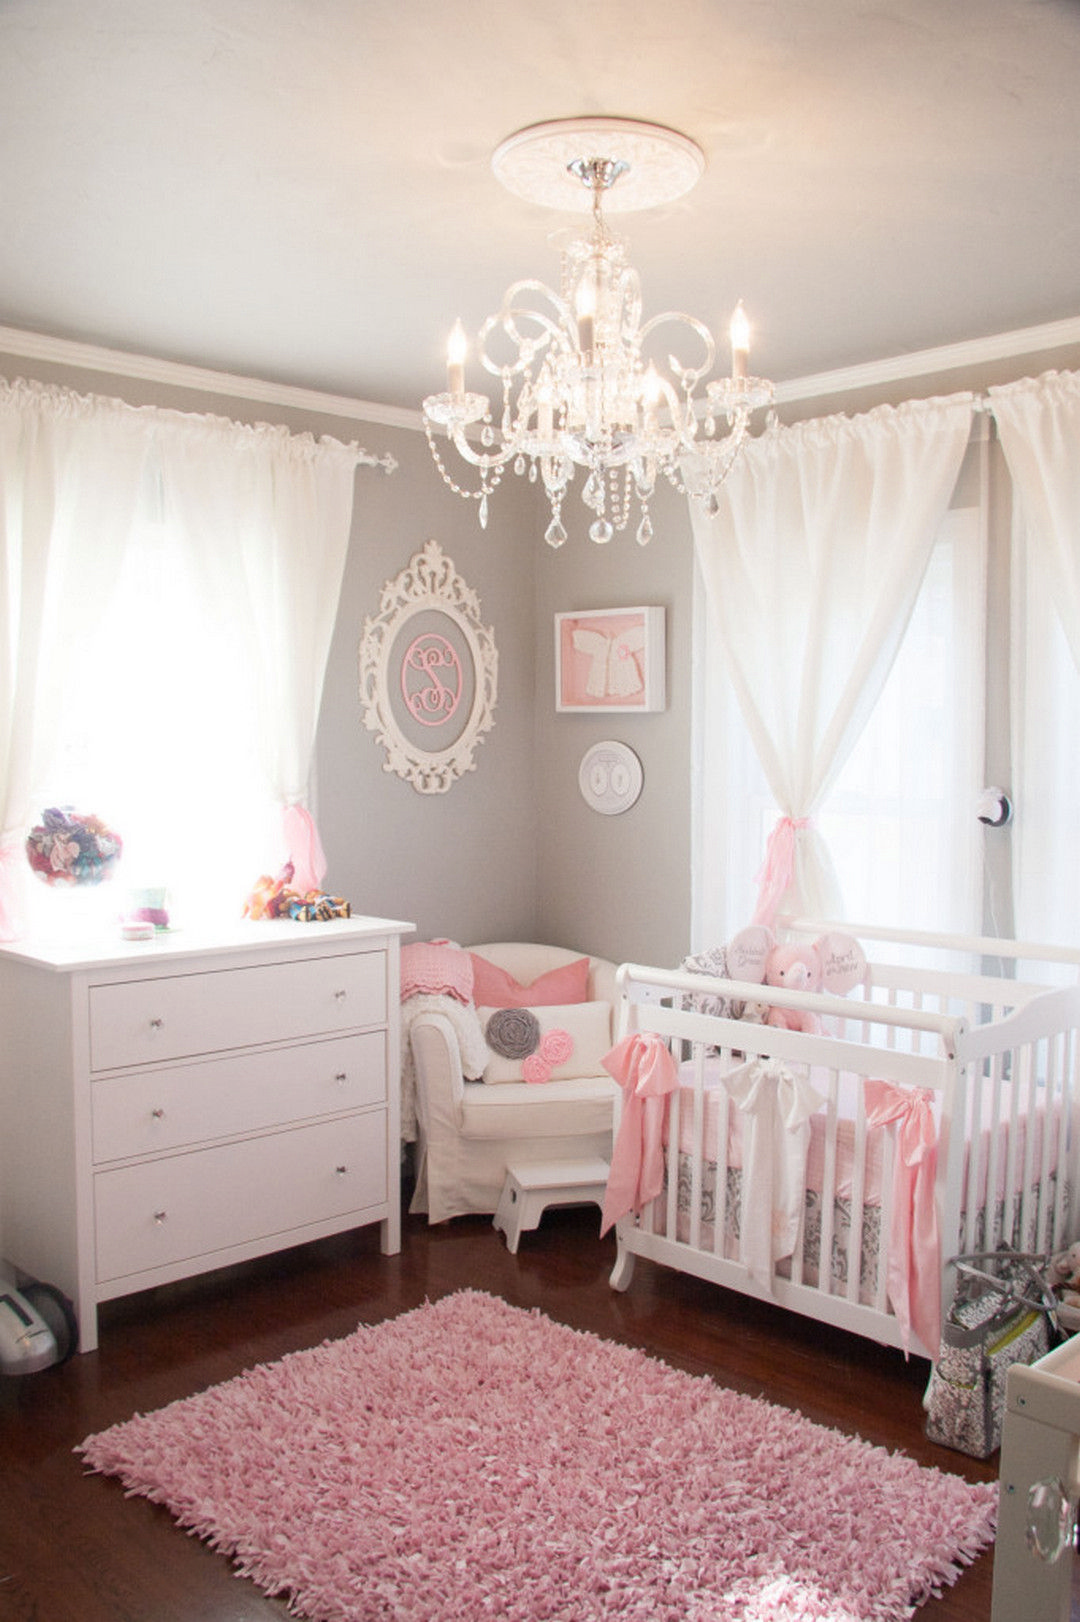 Baby Girl Nursery Decor Room For Baby Girl, Baby Girl Bedroom Ideas, Baby Nursery Ideas For Girl,